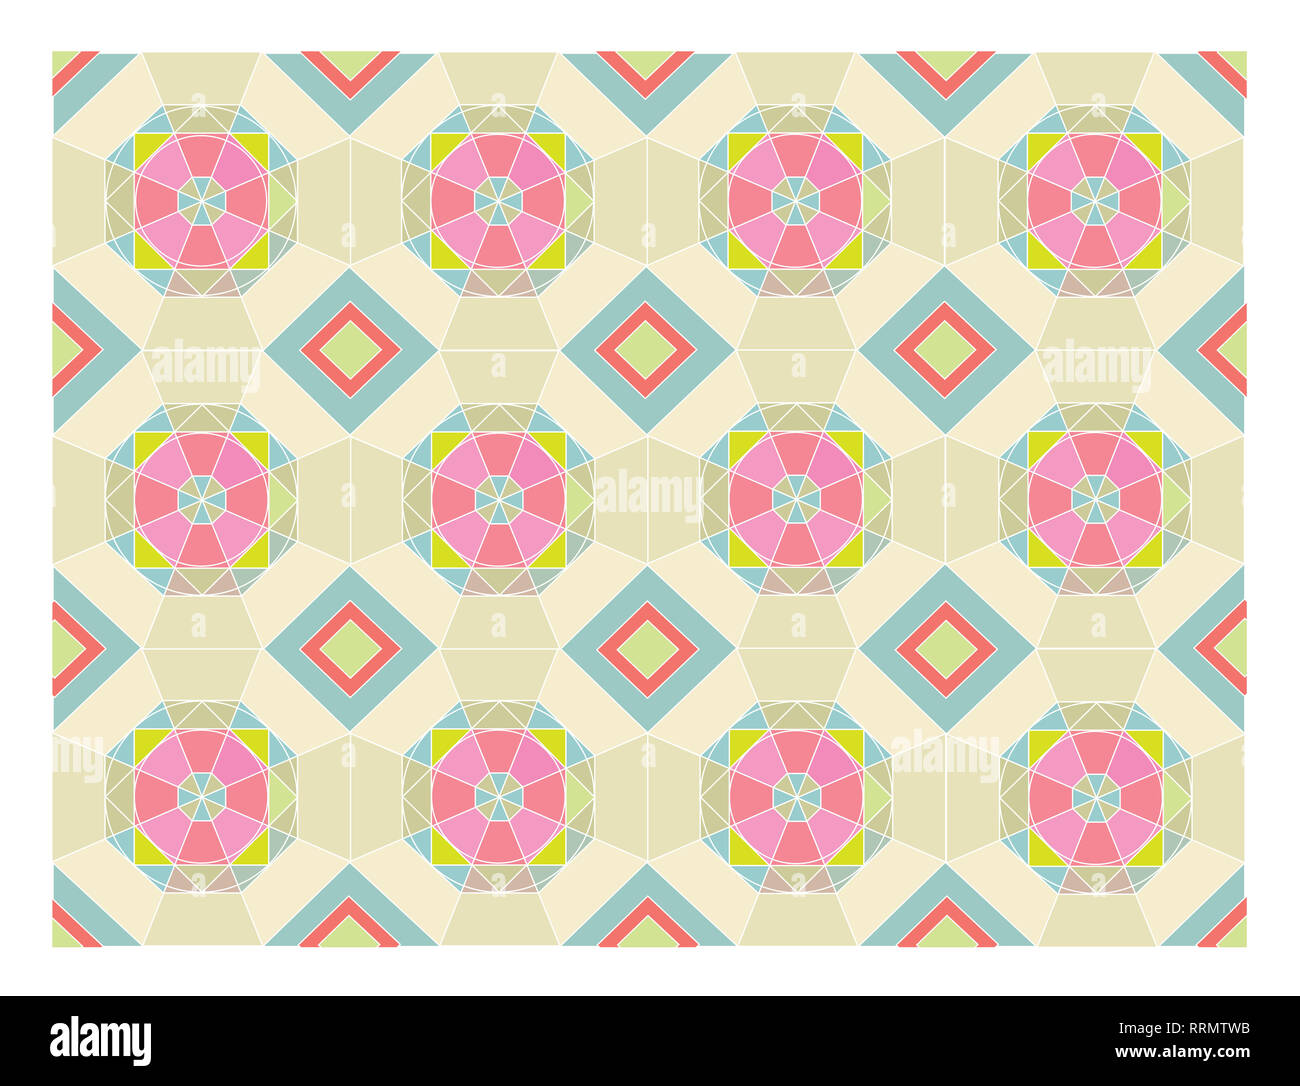 Hexagon pattern with bright colors - Stock Image